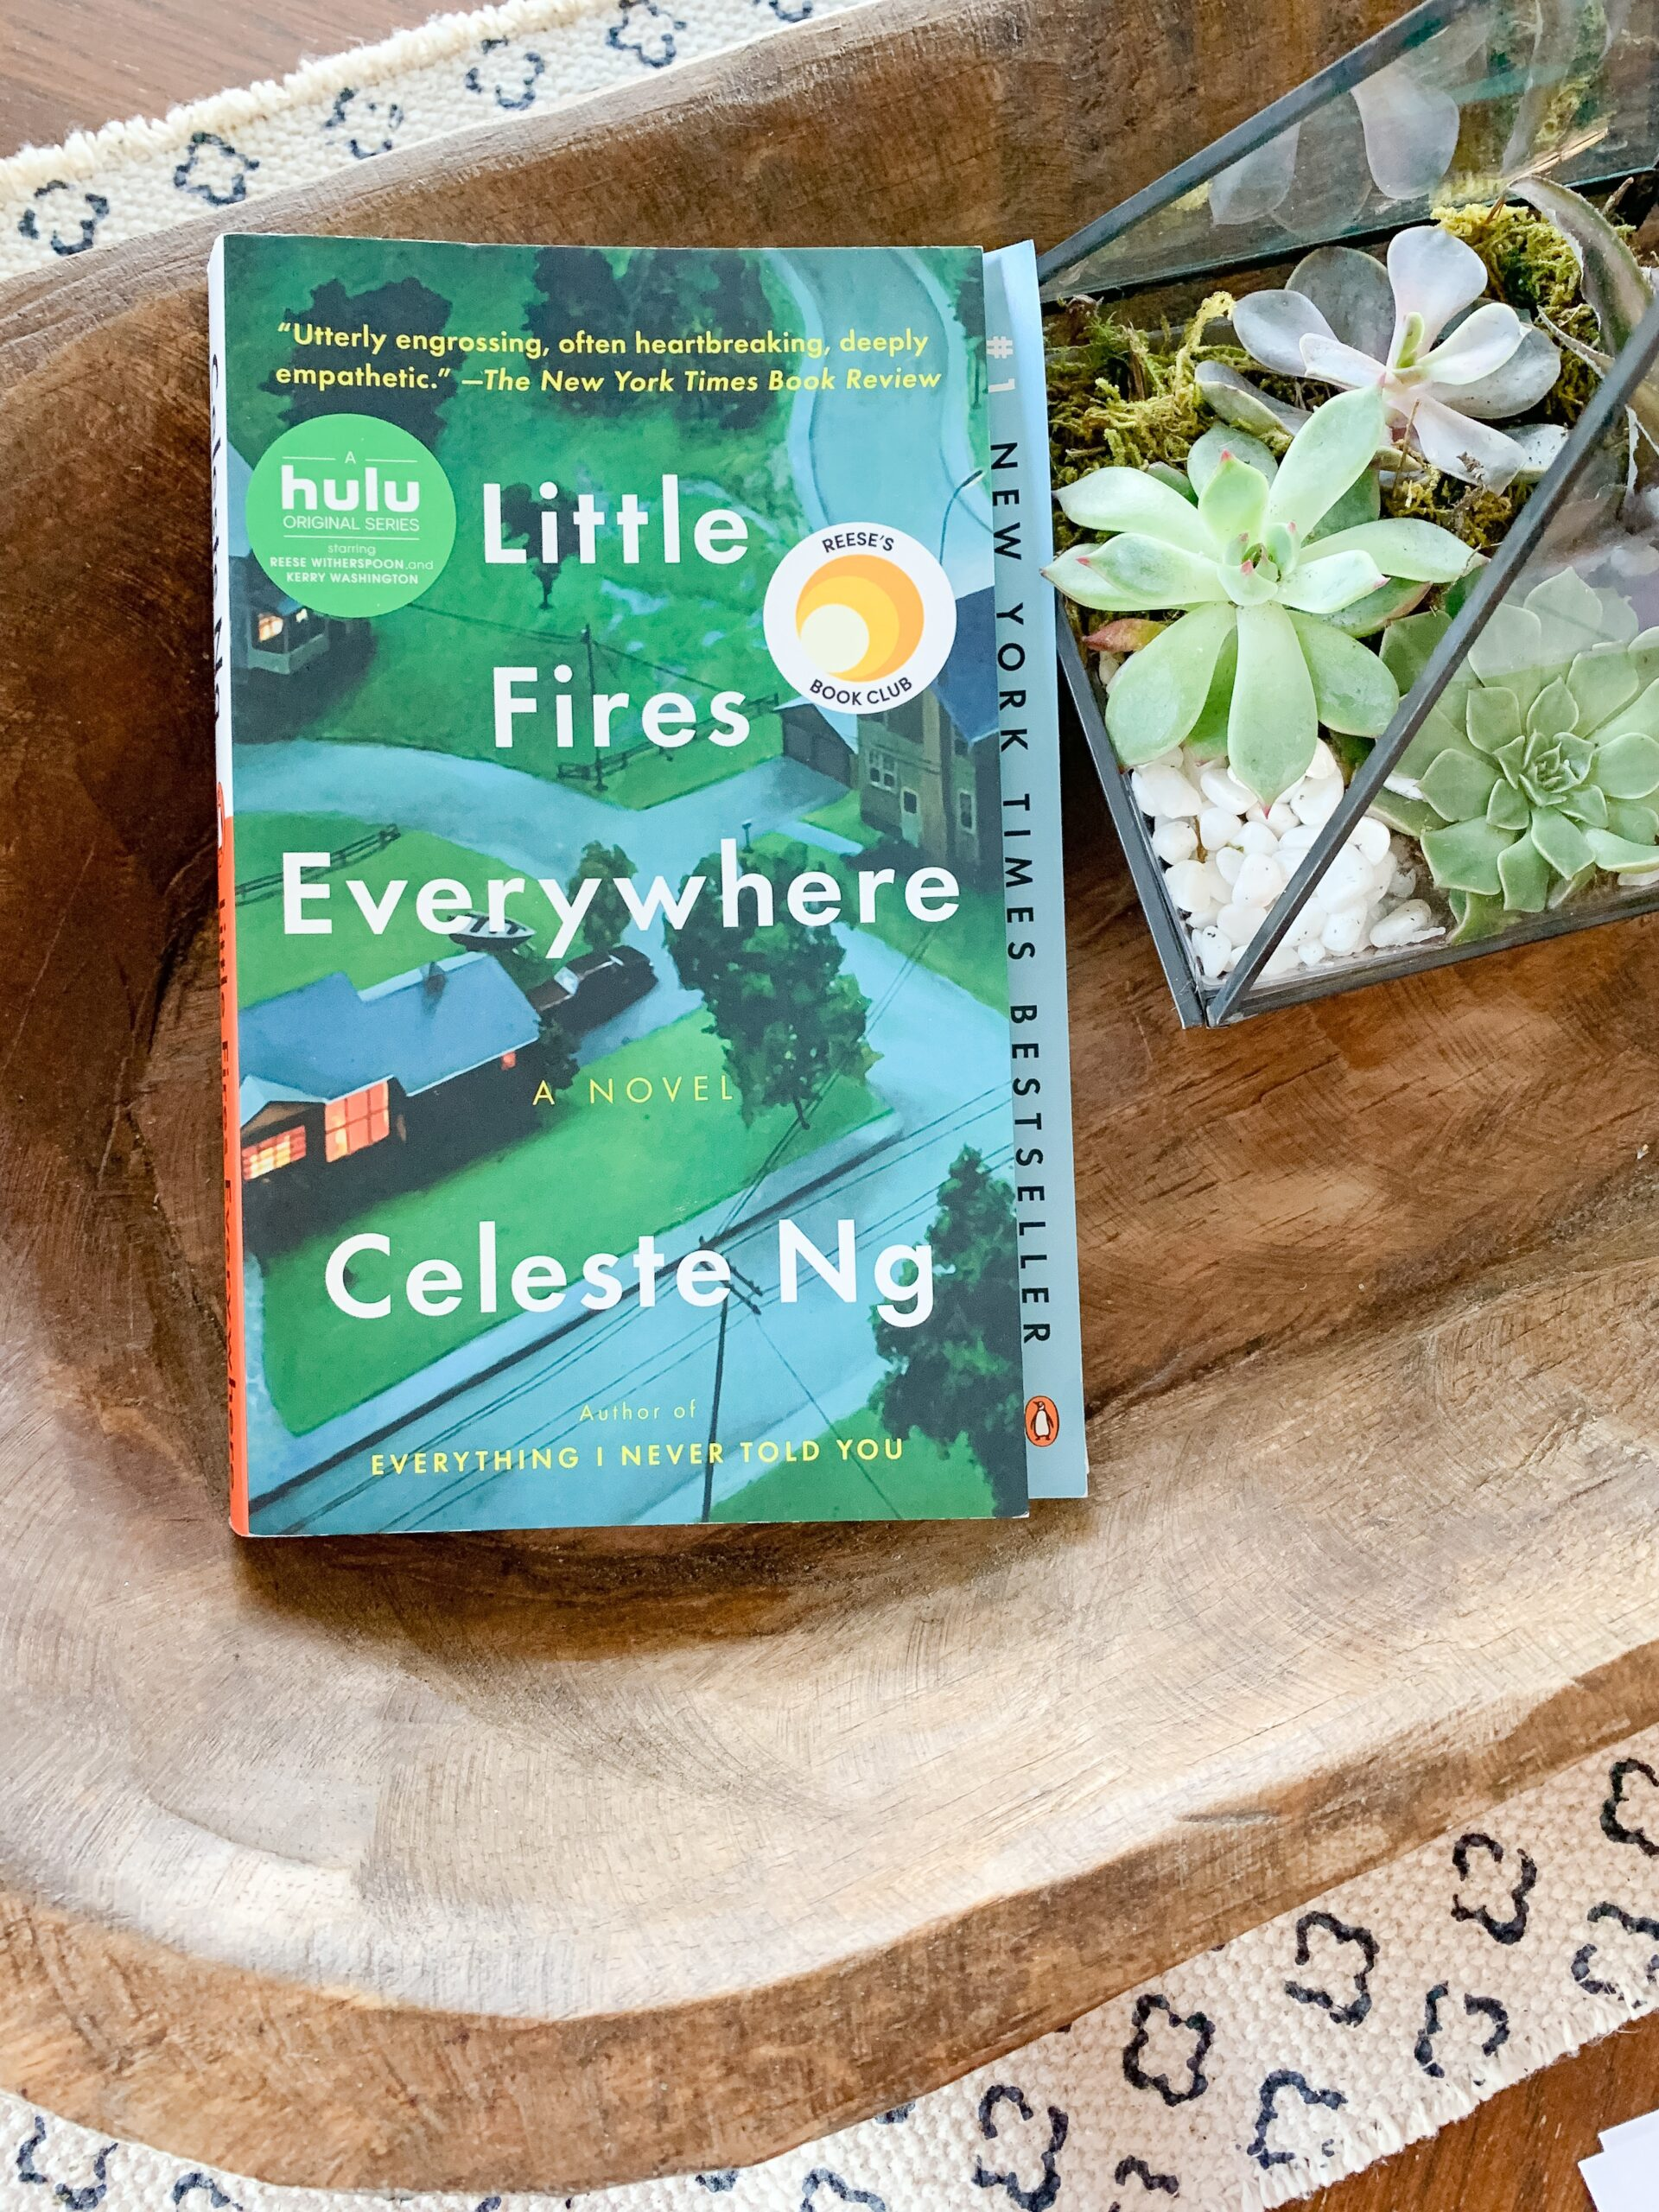 Little Fires Everywhere book in wooden bowl with succulents